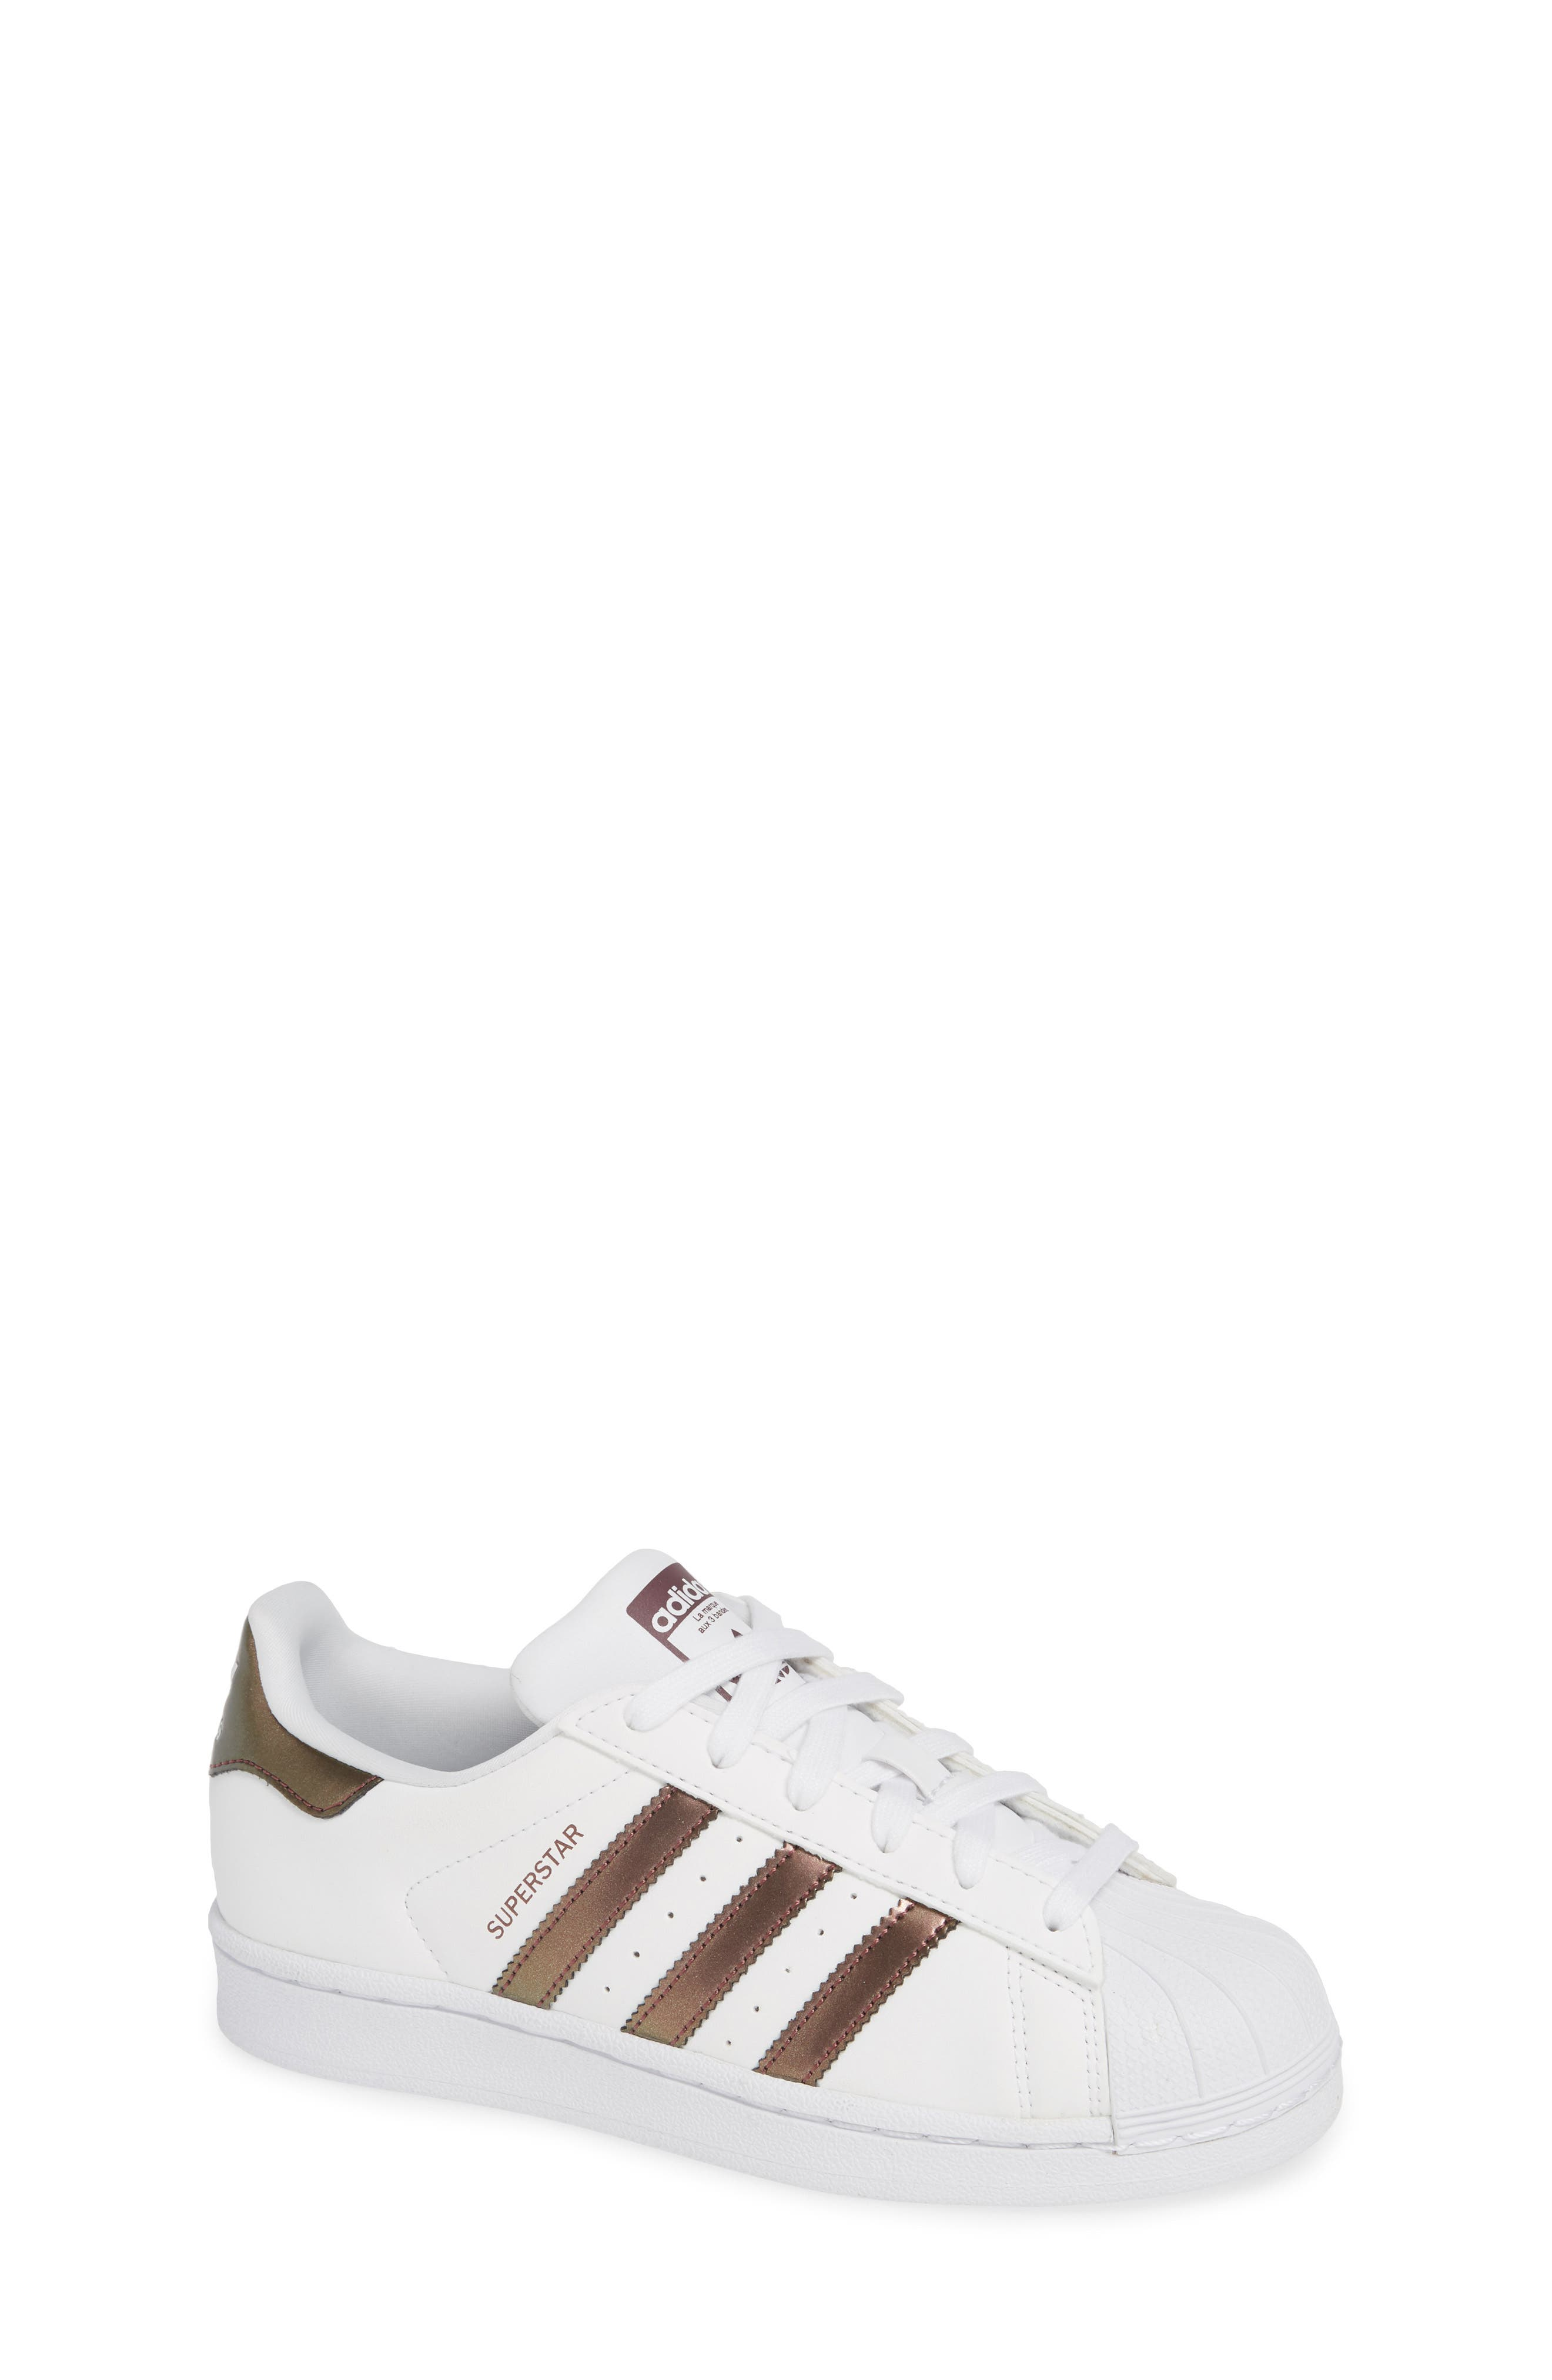 'Superstar II' Sneaker,                         Main,                         color, FOOTWEAR WHITE/COPPER